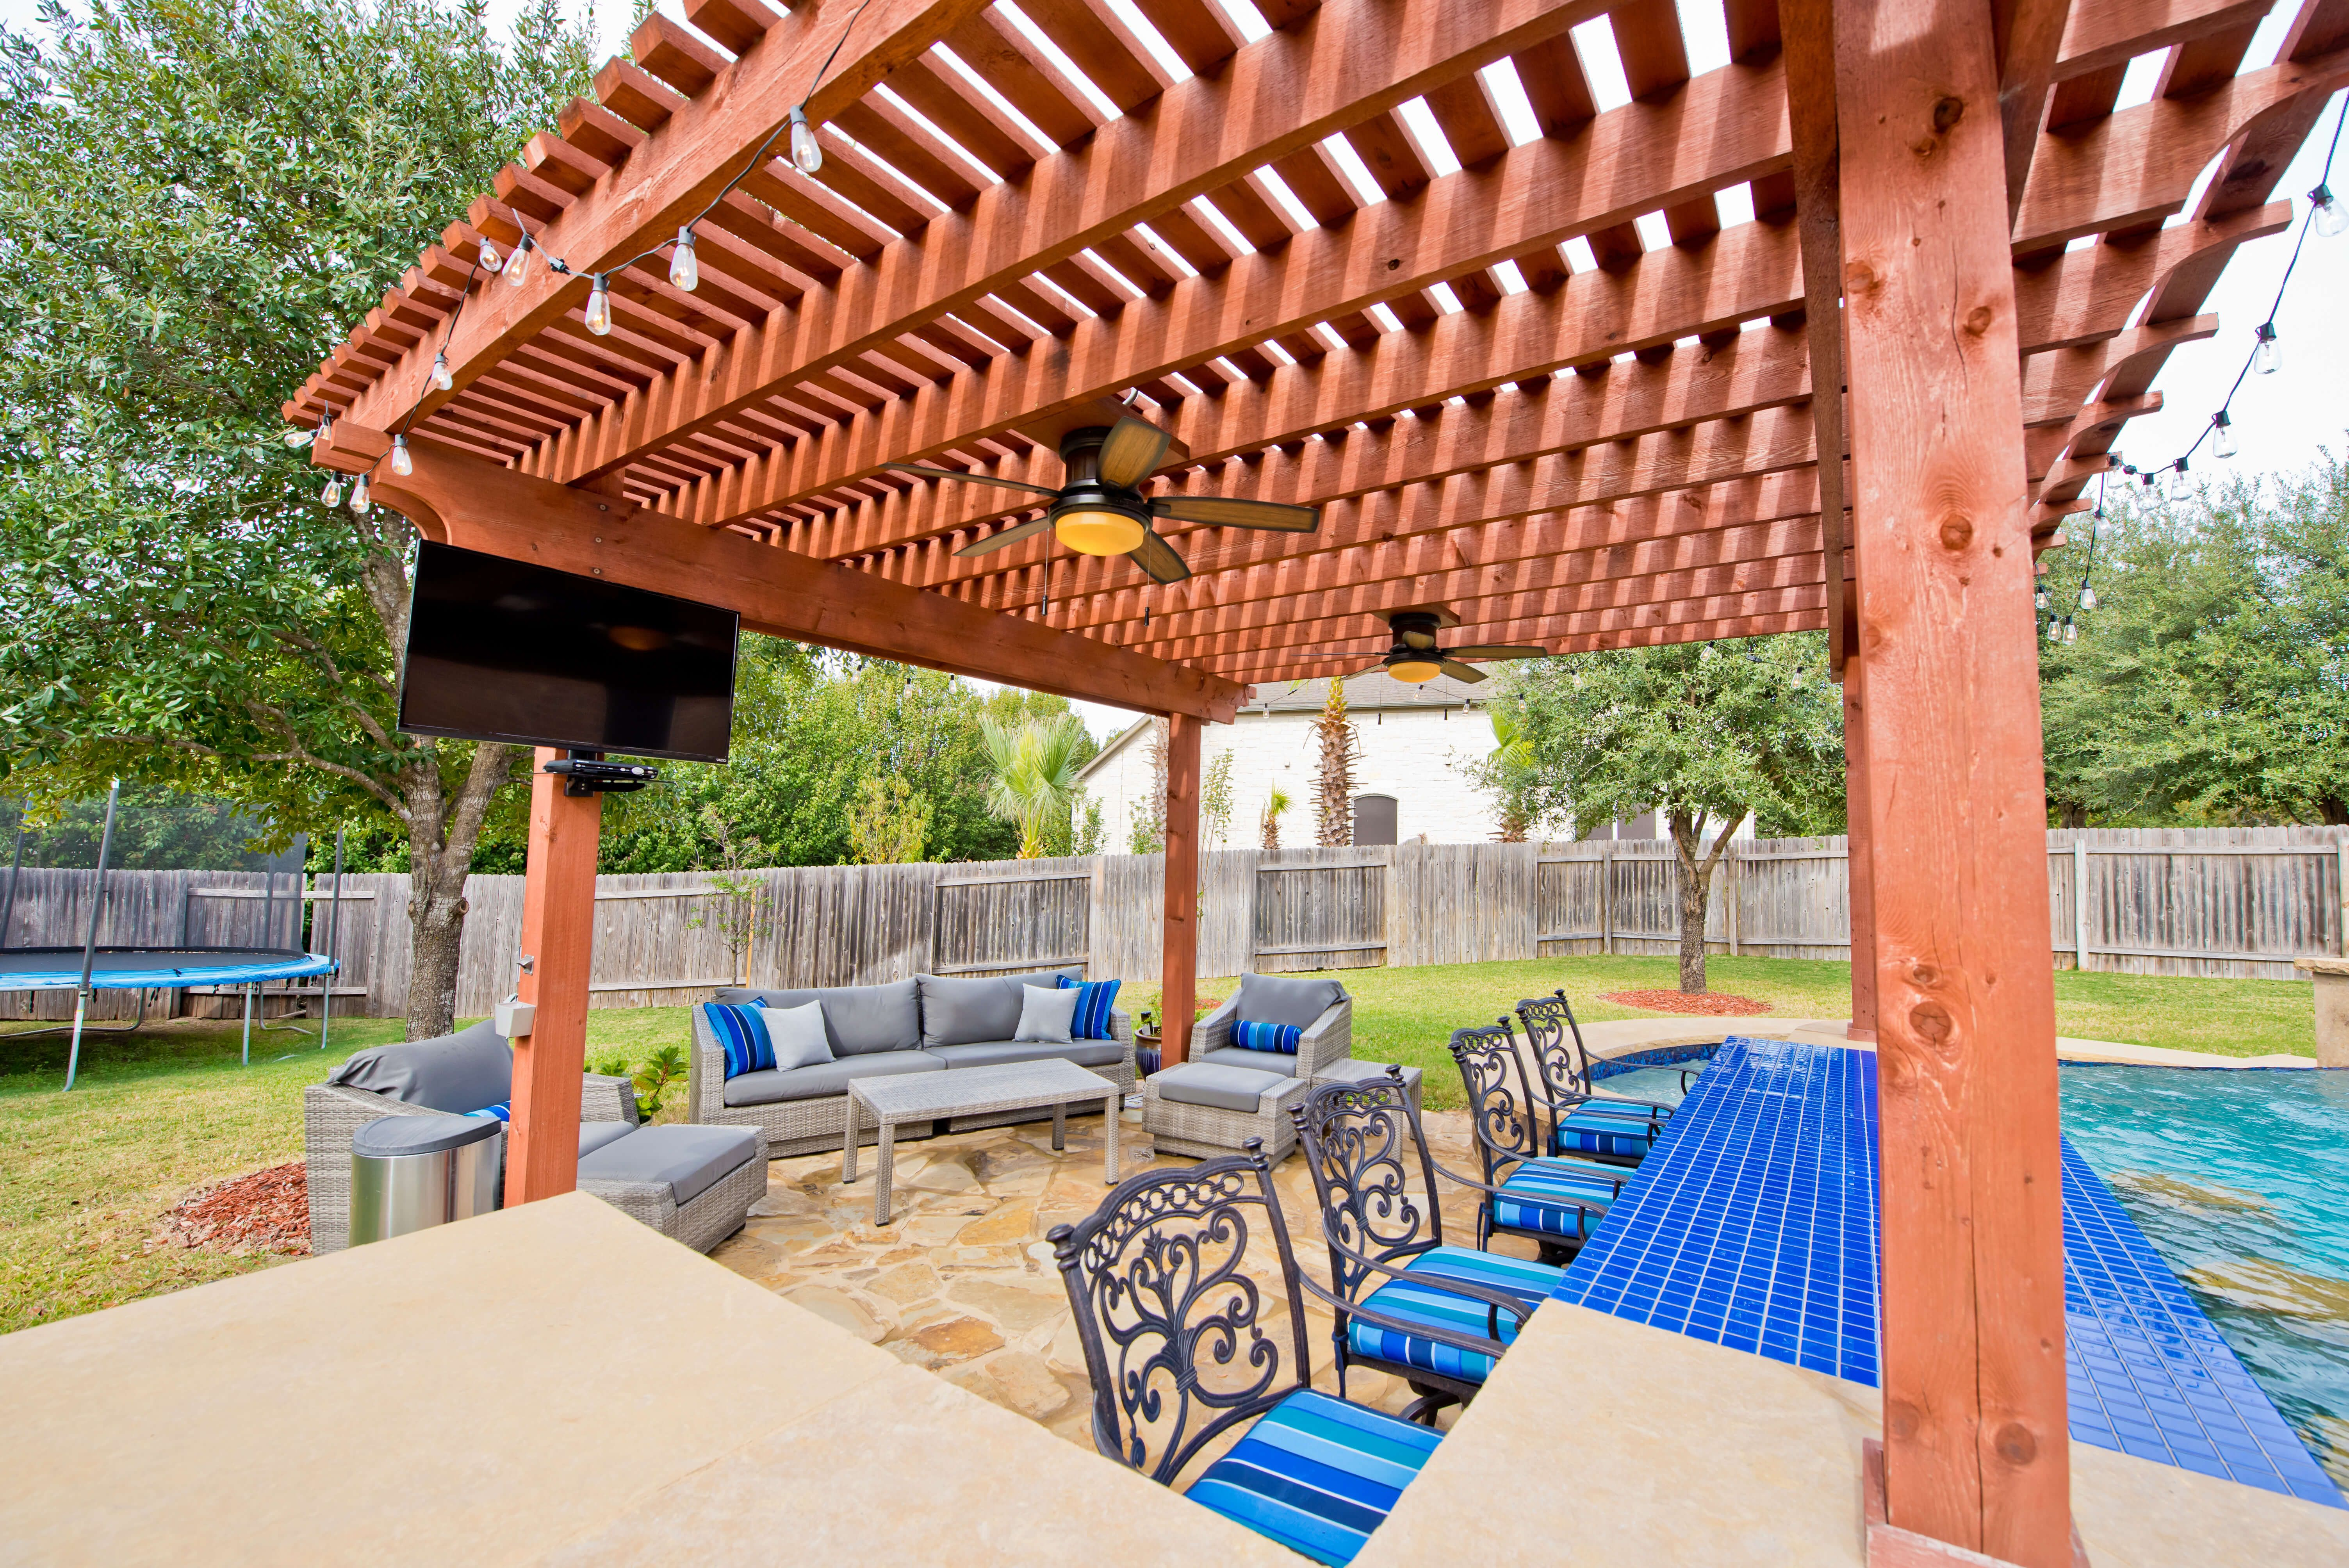 Pin By Texas Pools Patios On Texas Pool And Patio Outdoor Living Outdoor Living Outdoor Living Areas Living Photo